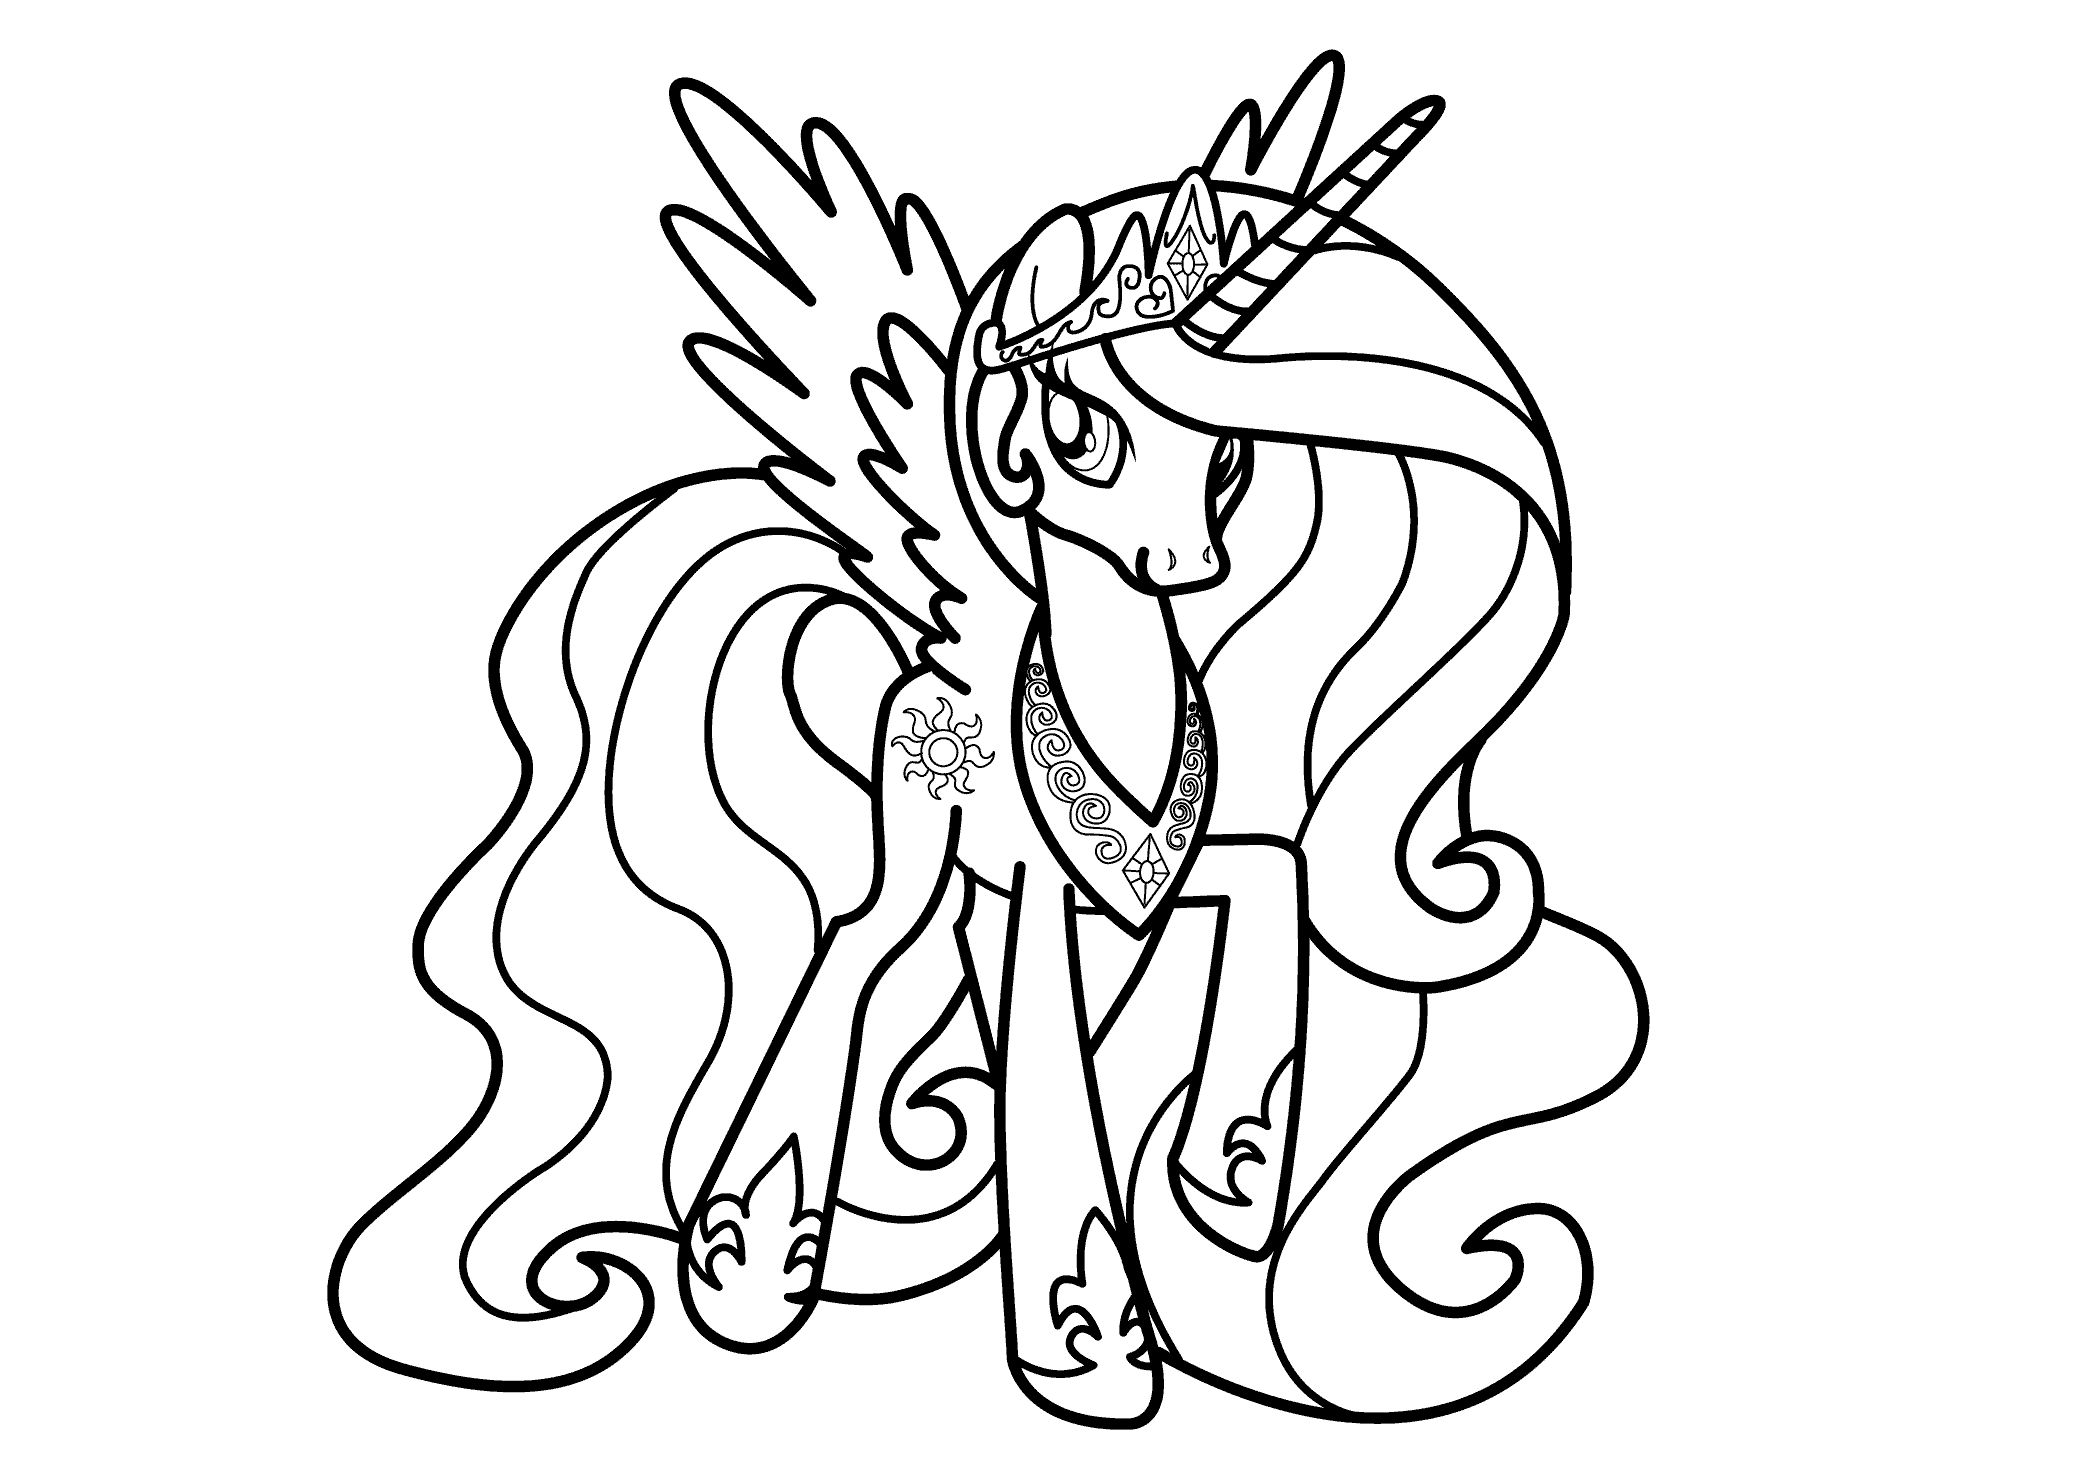 28 Princess Luna Coloring Pages Printable | FREE COLORING PAGES